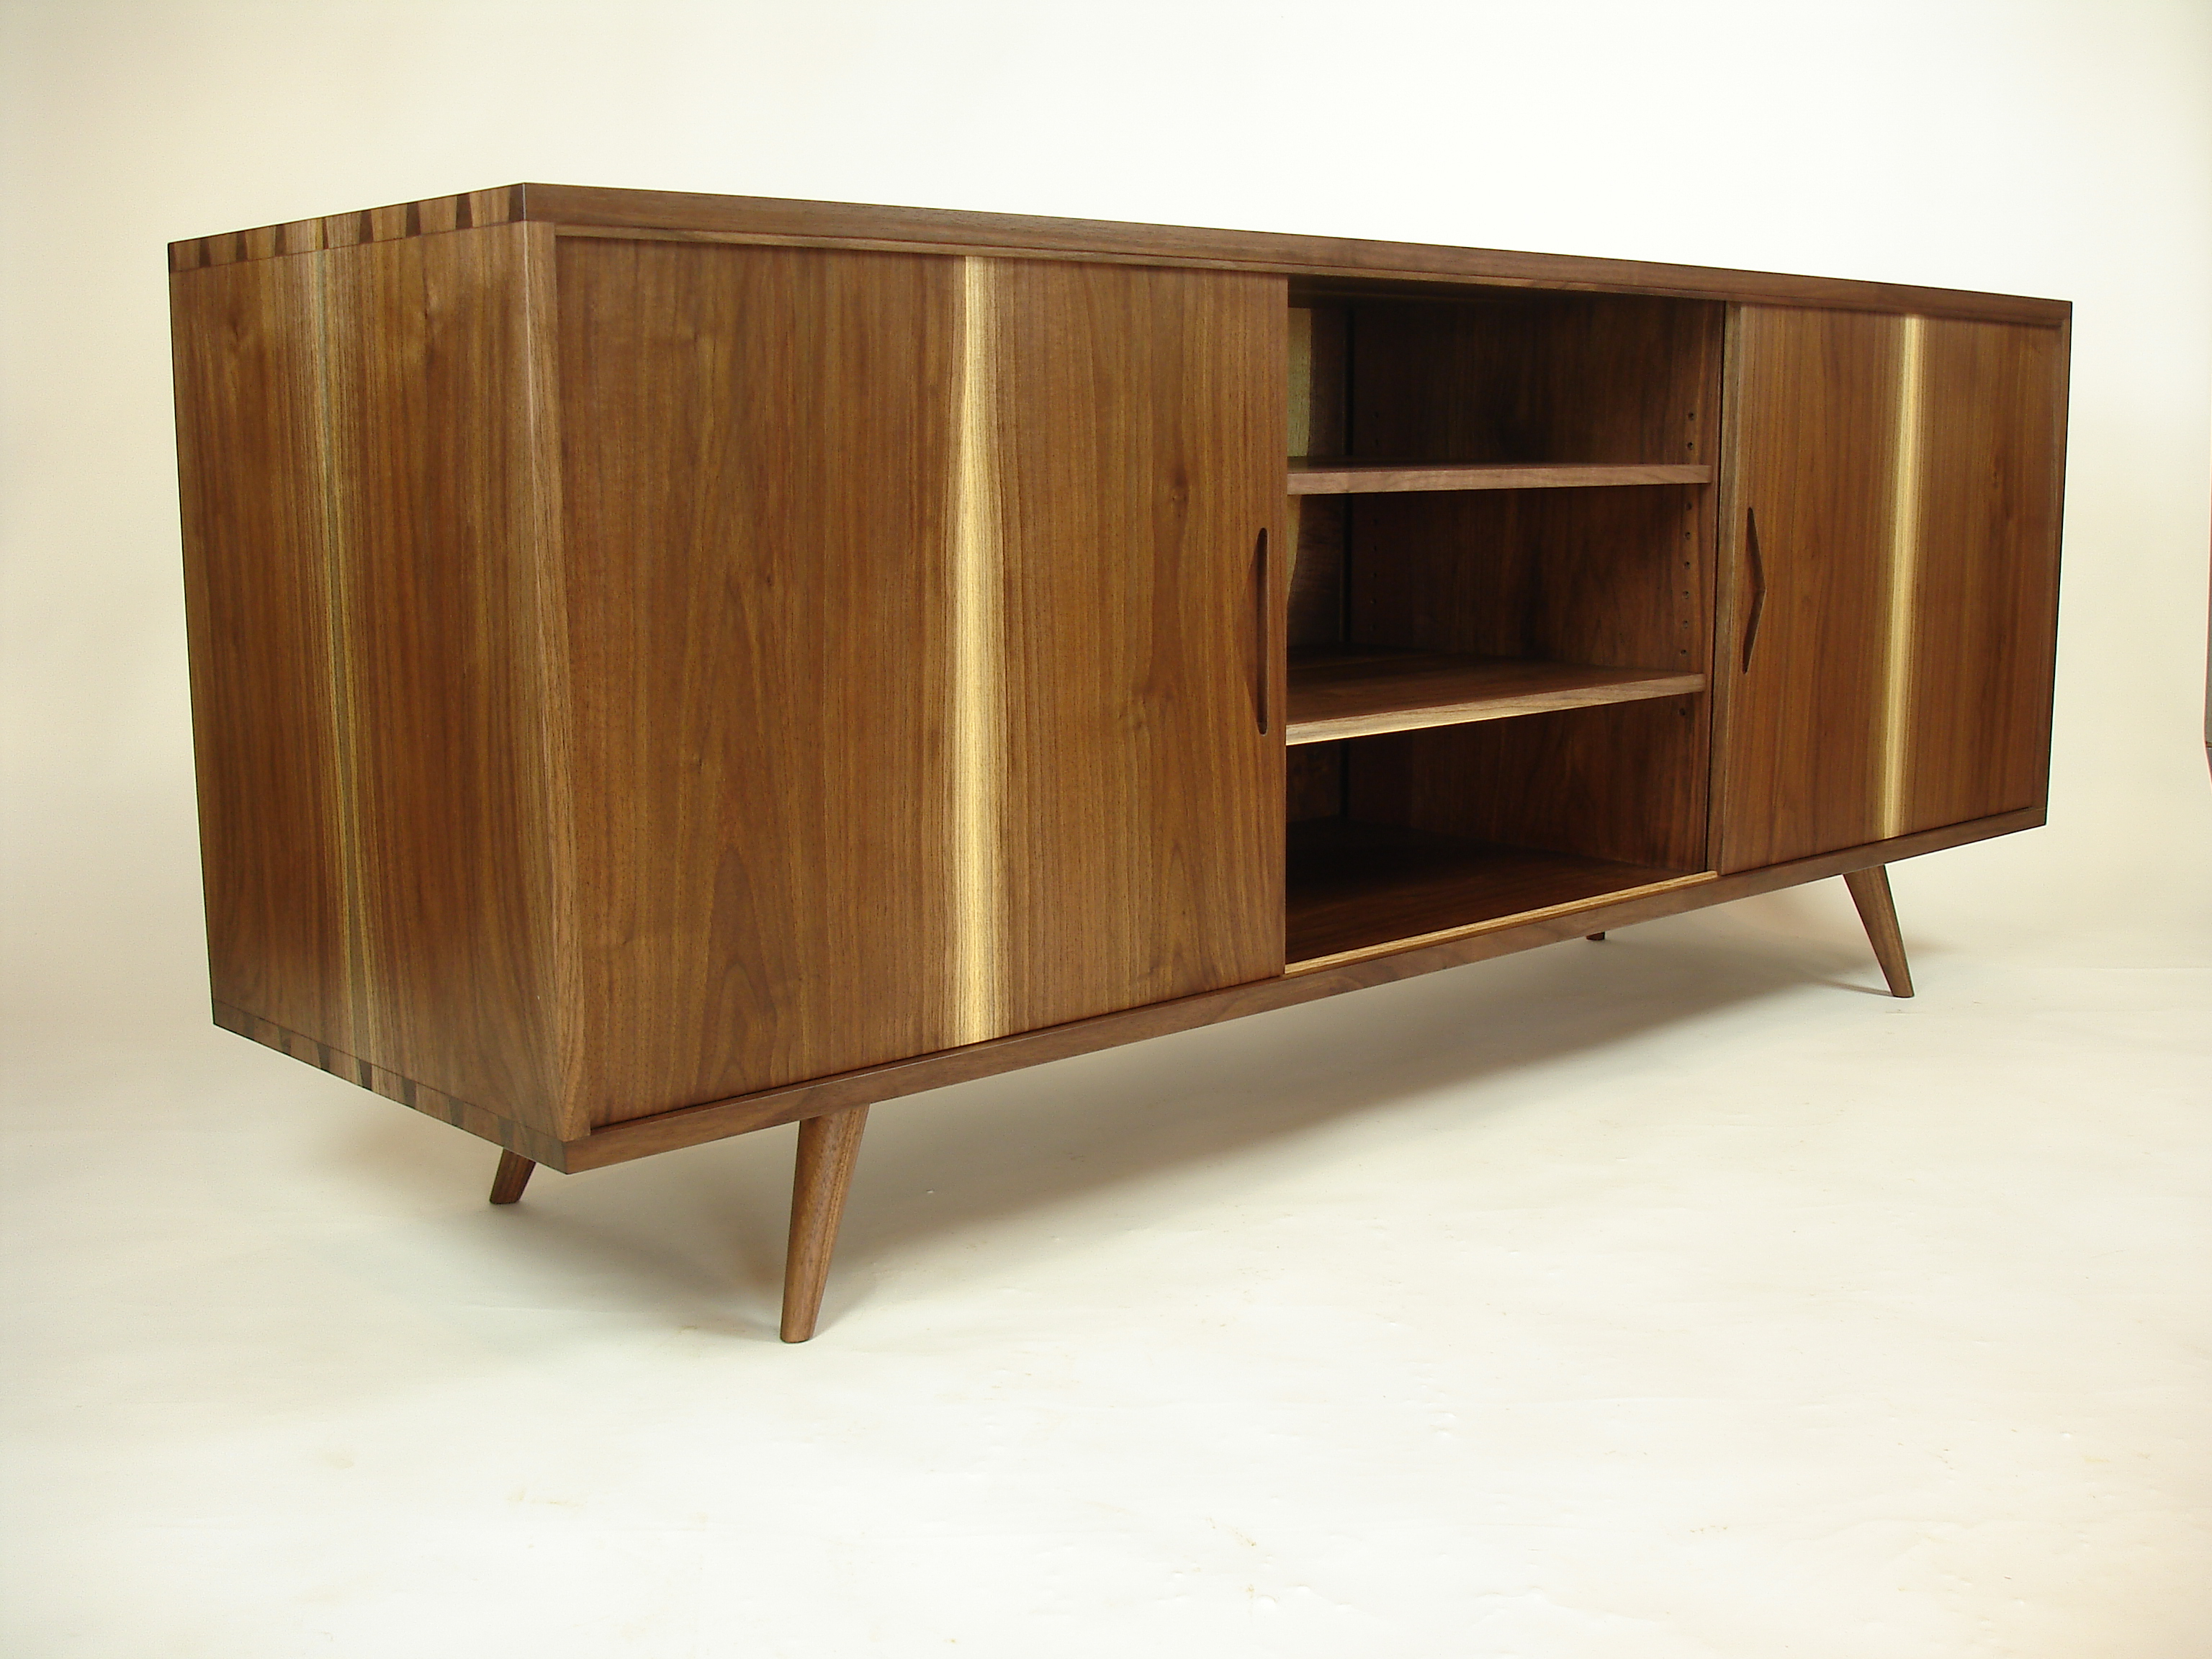 Slurry And Swarf A Woodworkers Blog – Peter Deboer Throughout Most Current Jigsaw Refinement Sideboards (View 18 of 20)